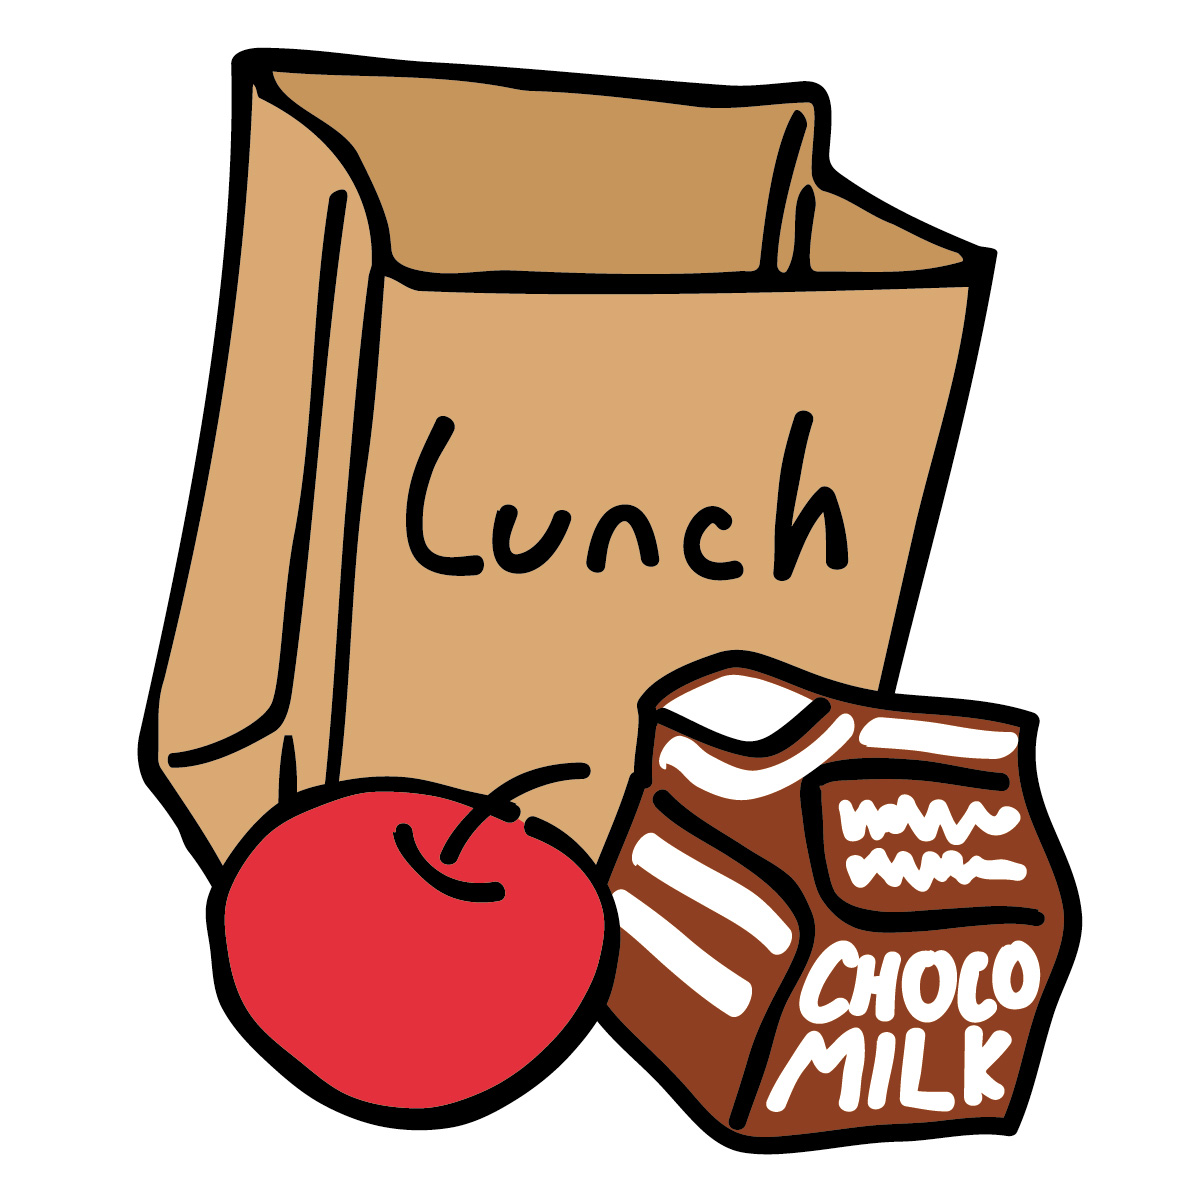 Library clipart lunchroom Lunch bag Center School Children's